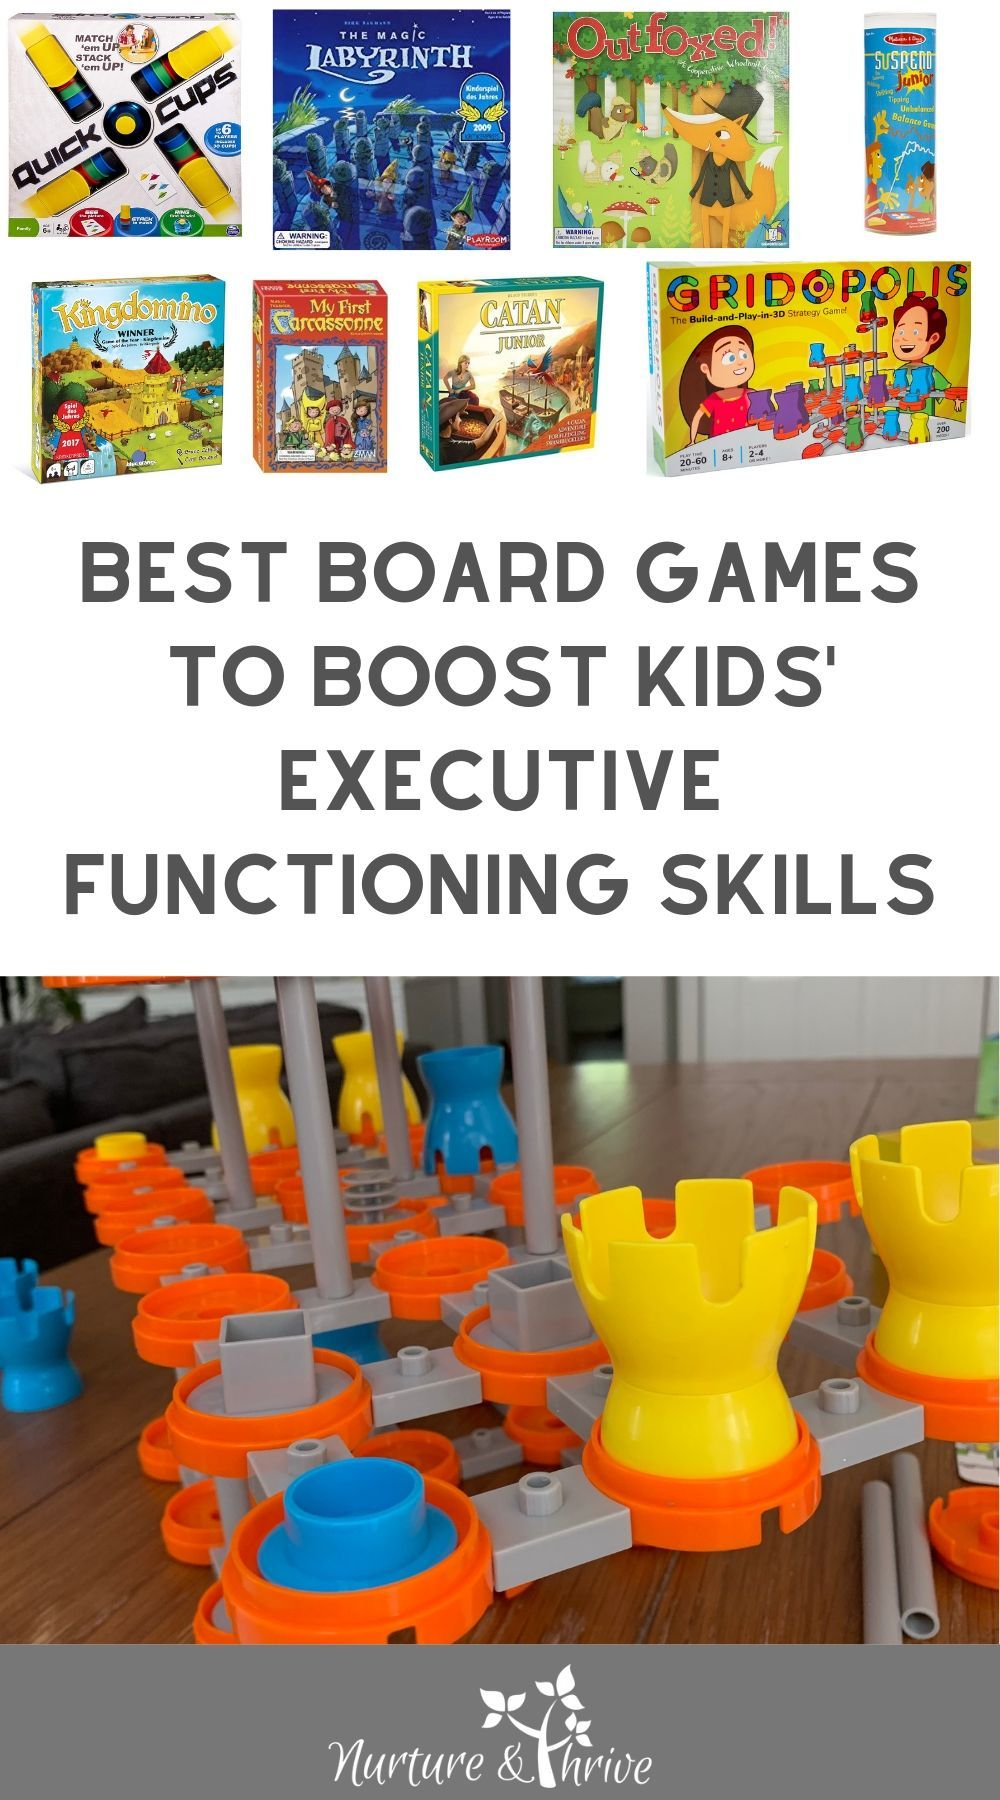 Chairs Game Skill Balancing Age 5 Childrens Games